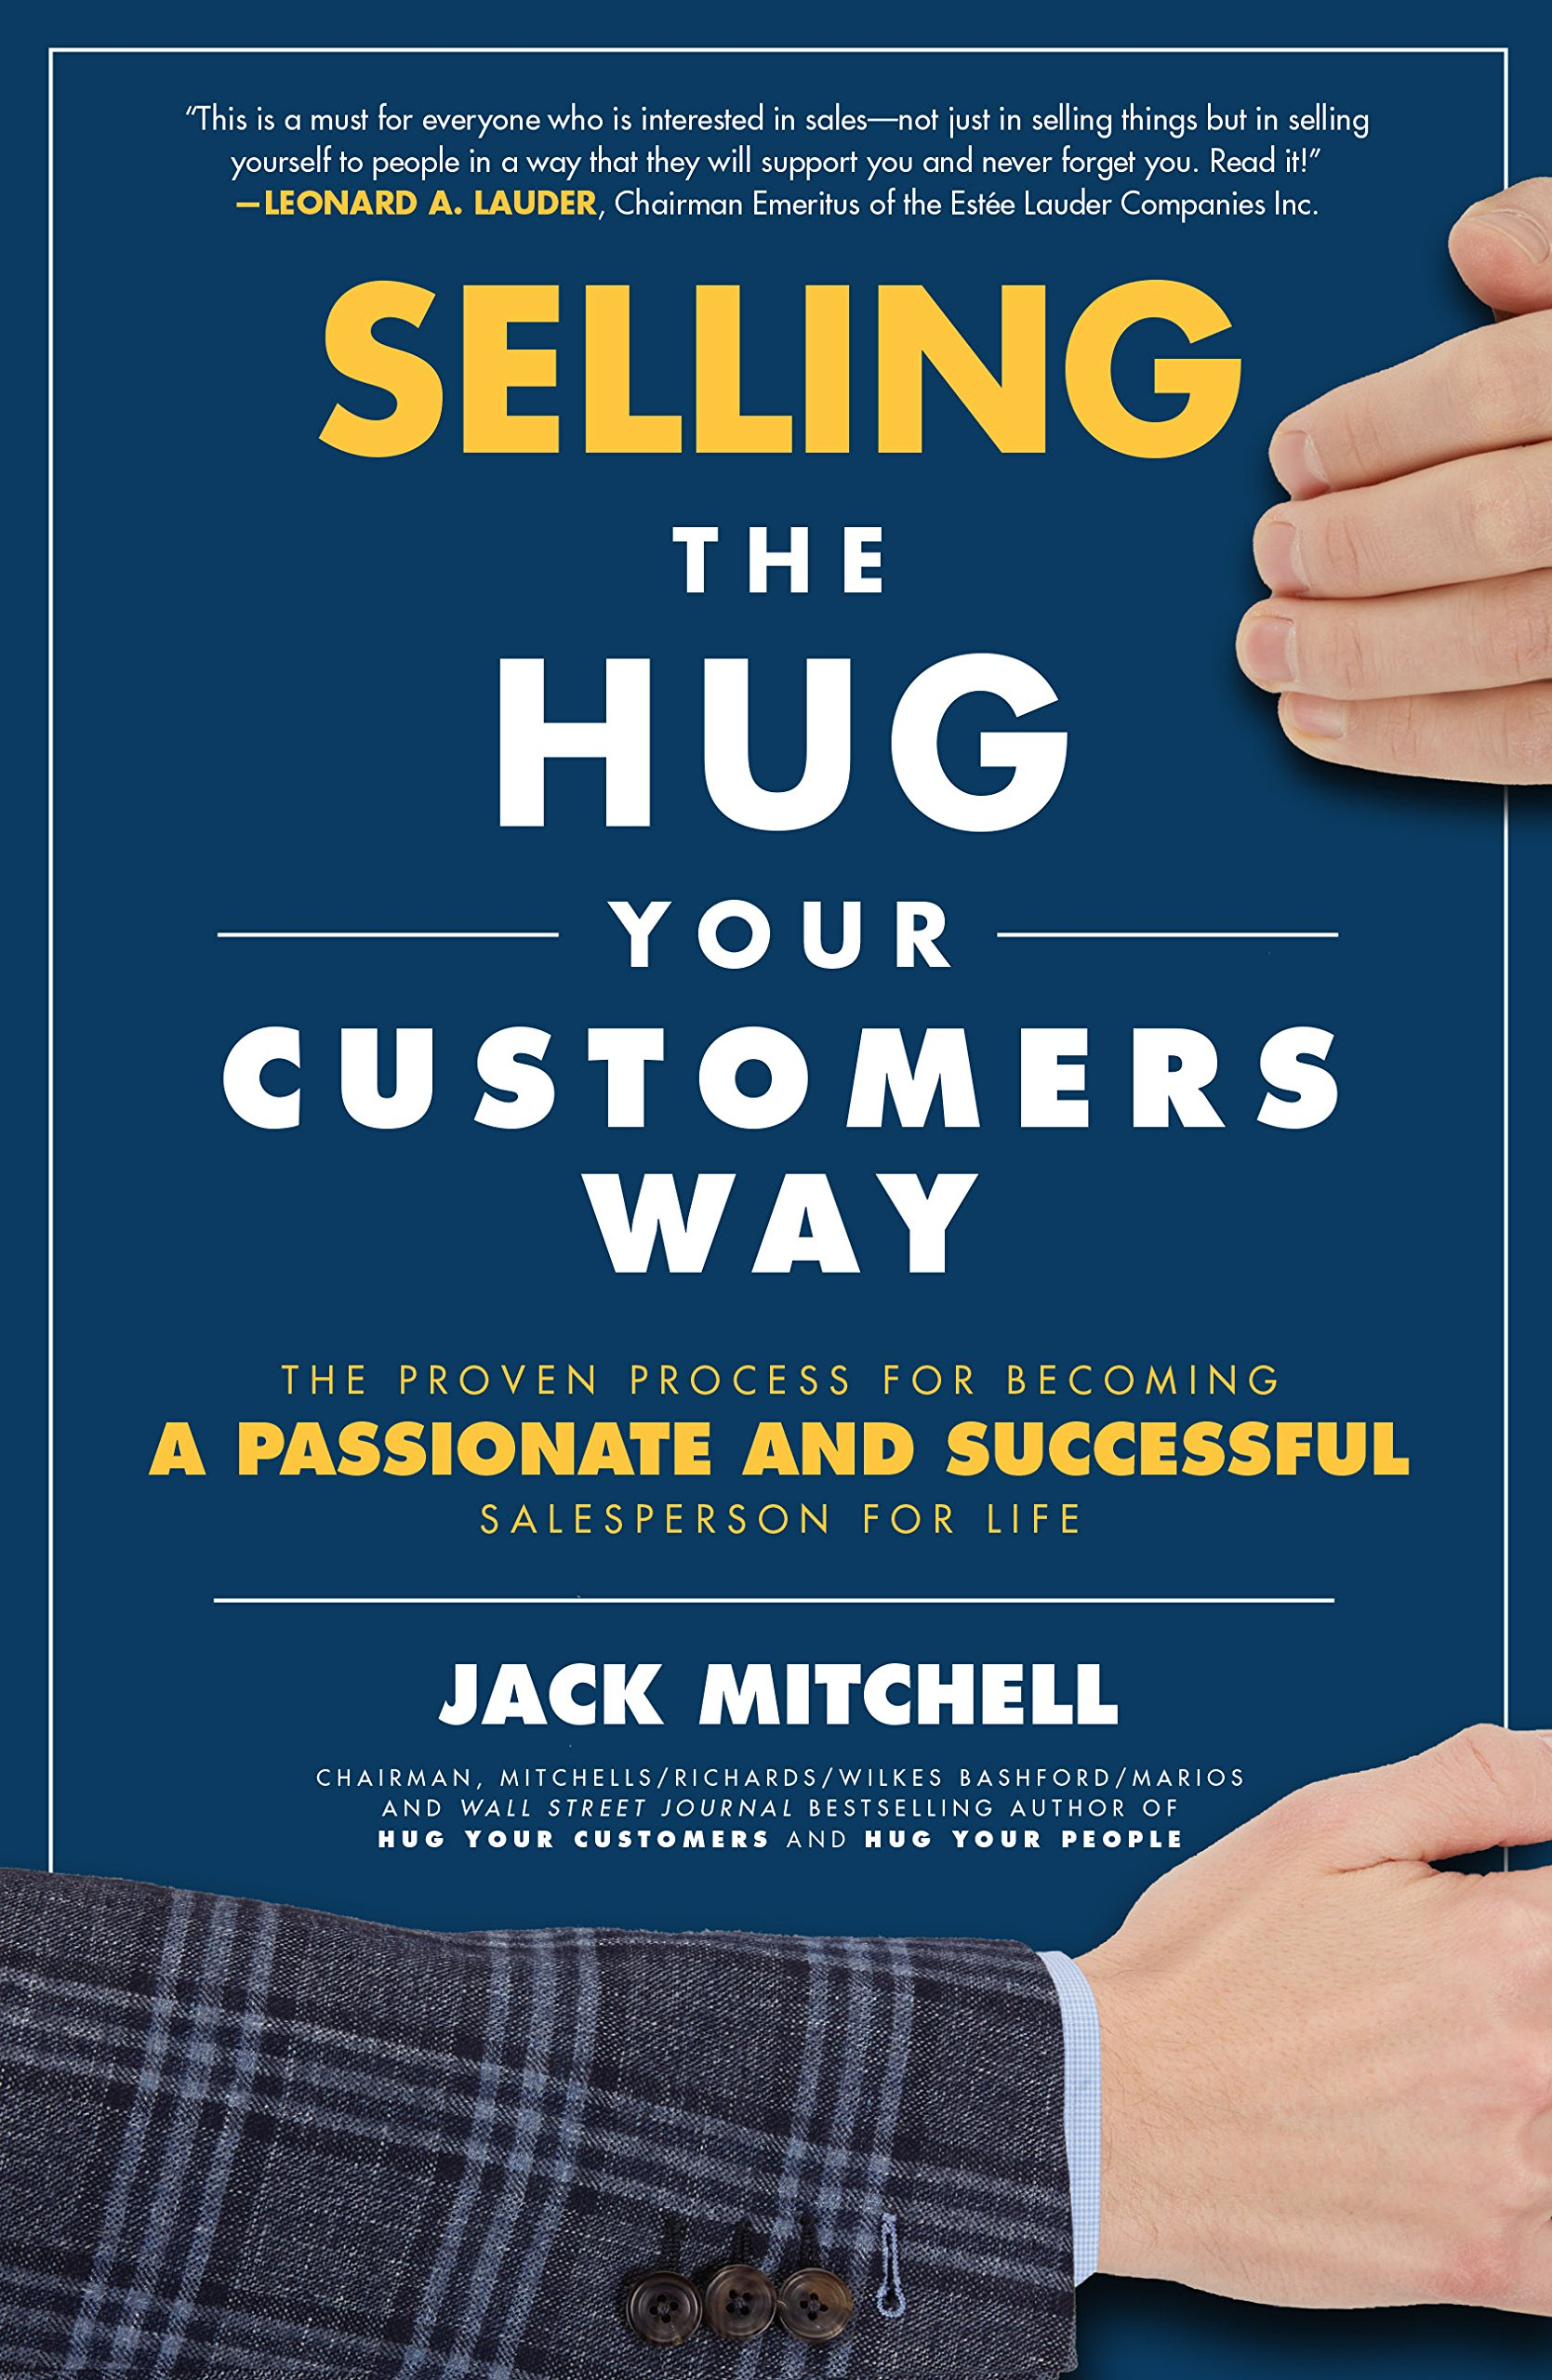 Selling the Hug Your Customers Way: The Proven Process for Becoming a Passionate and Successful Salesperson For Life